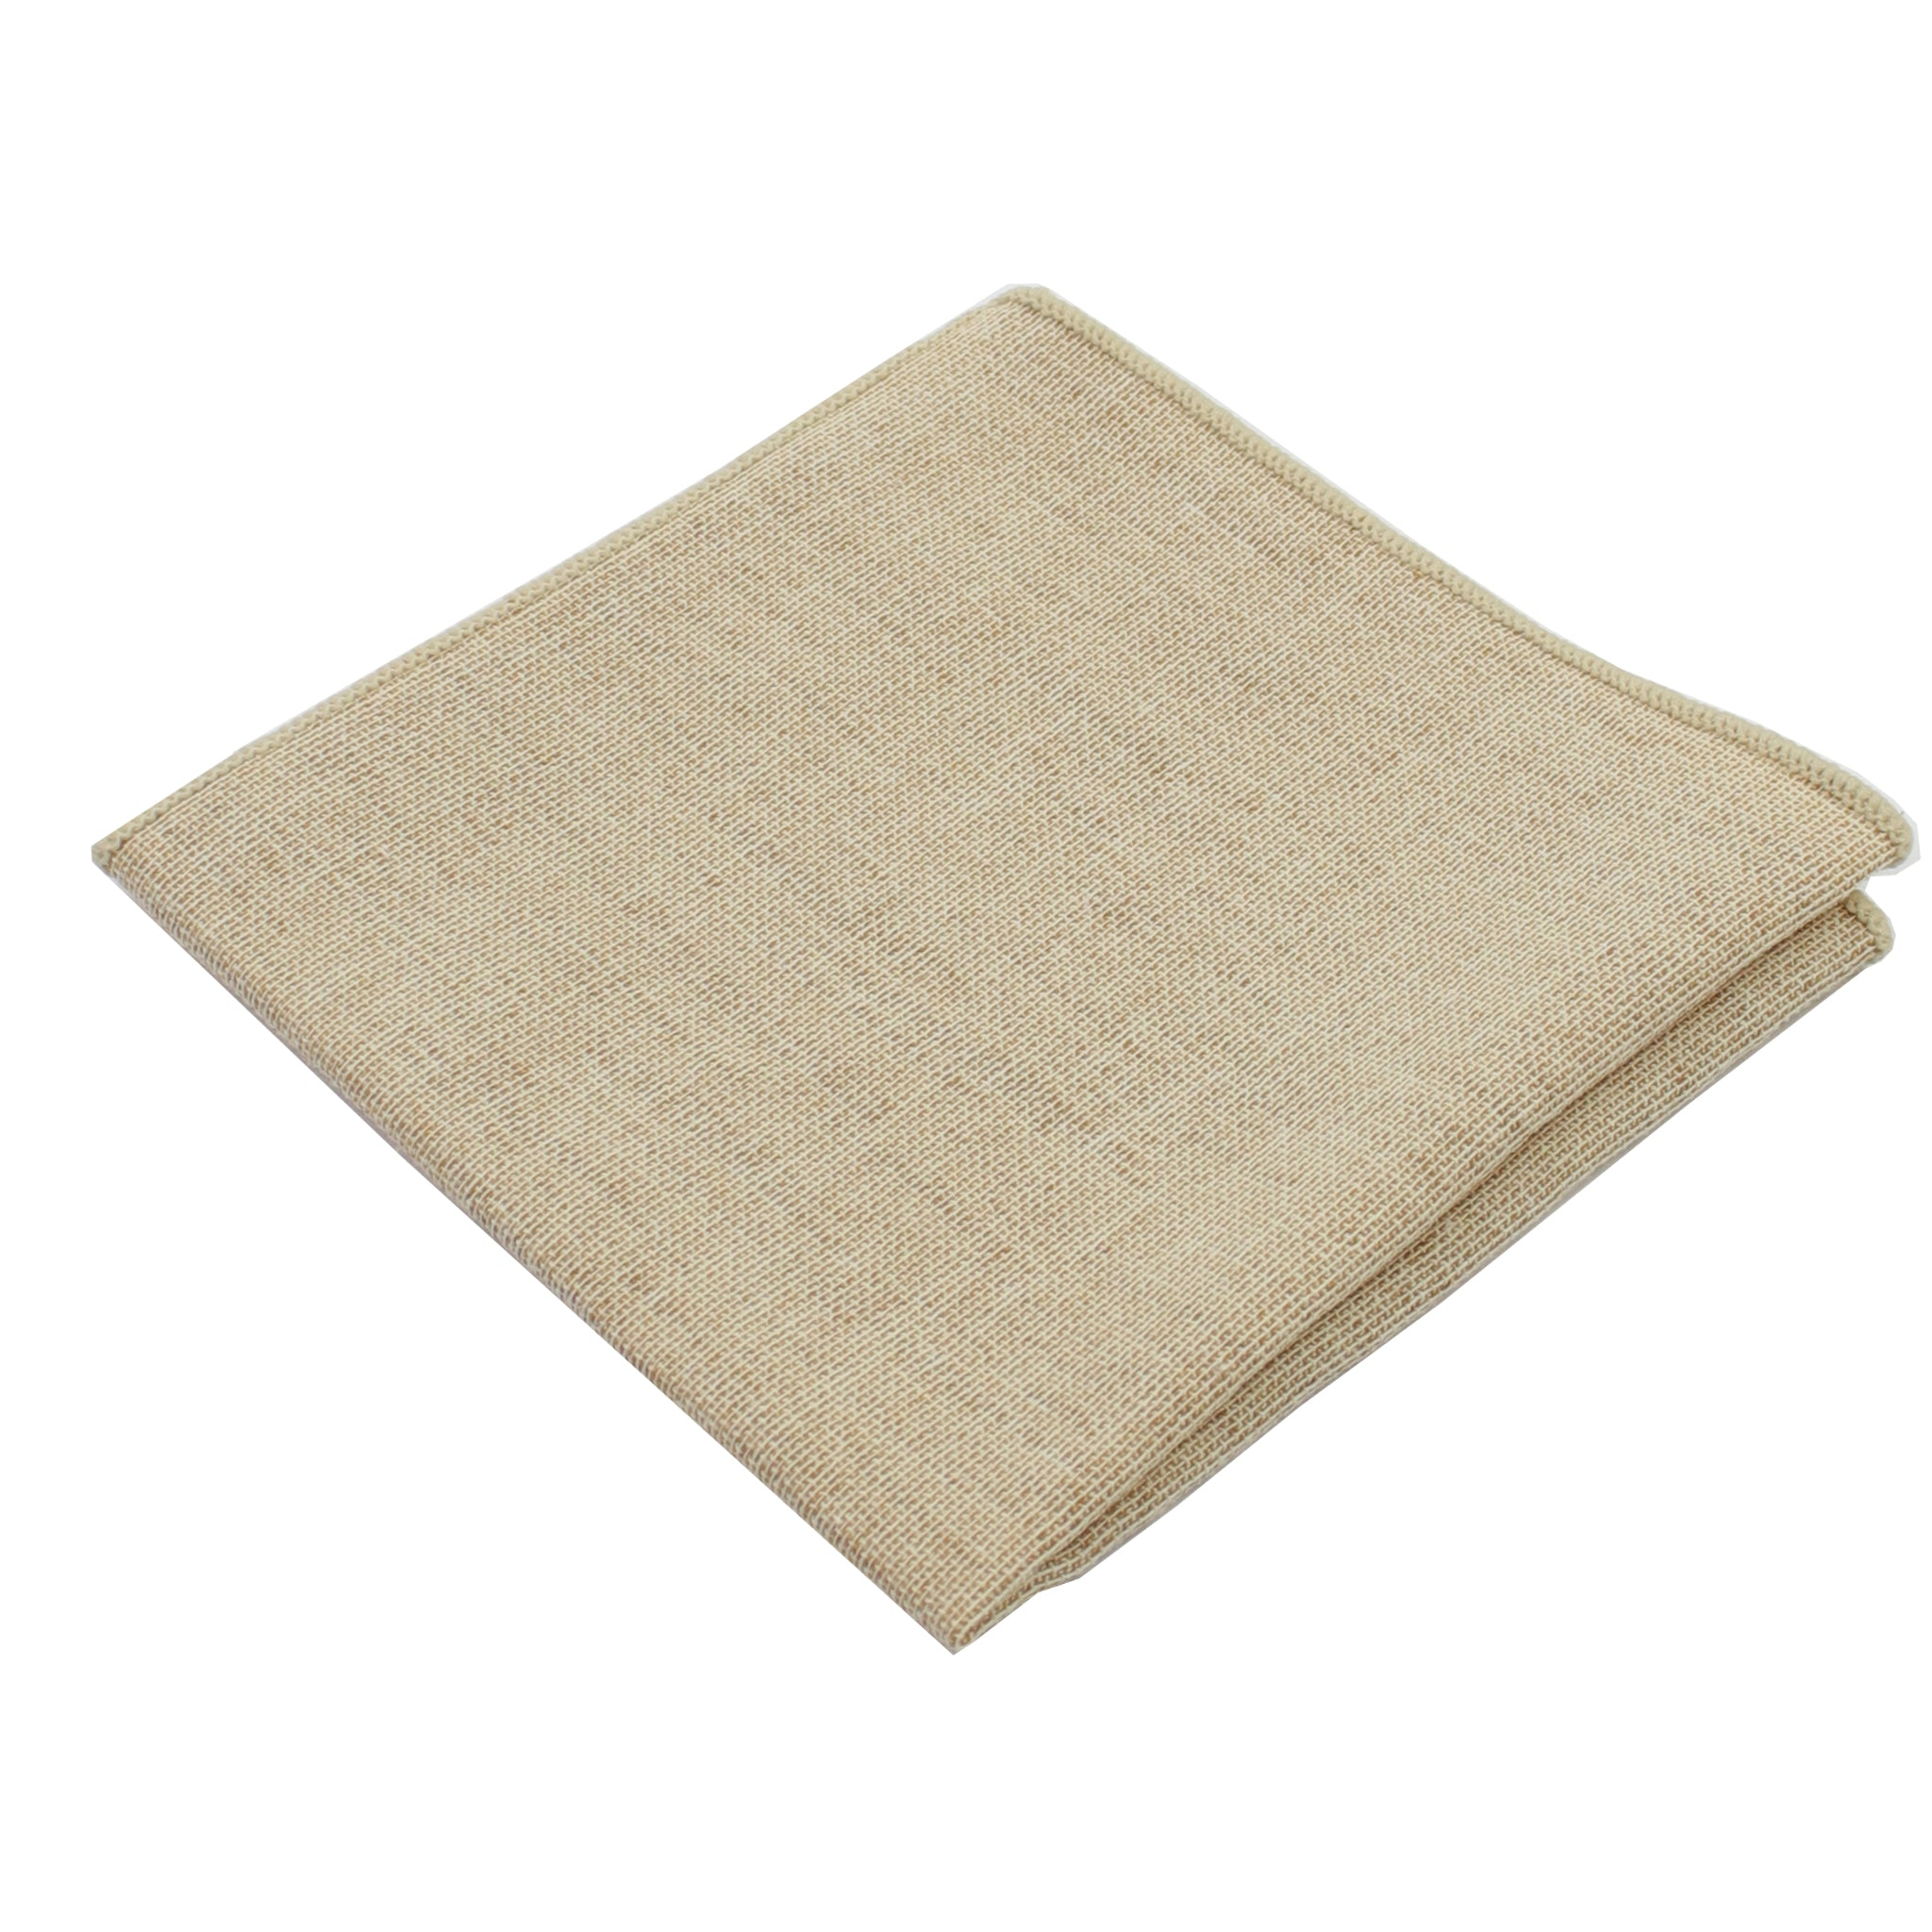 Burlap Sand Pocket Square from DIBI